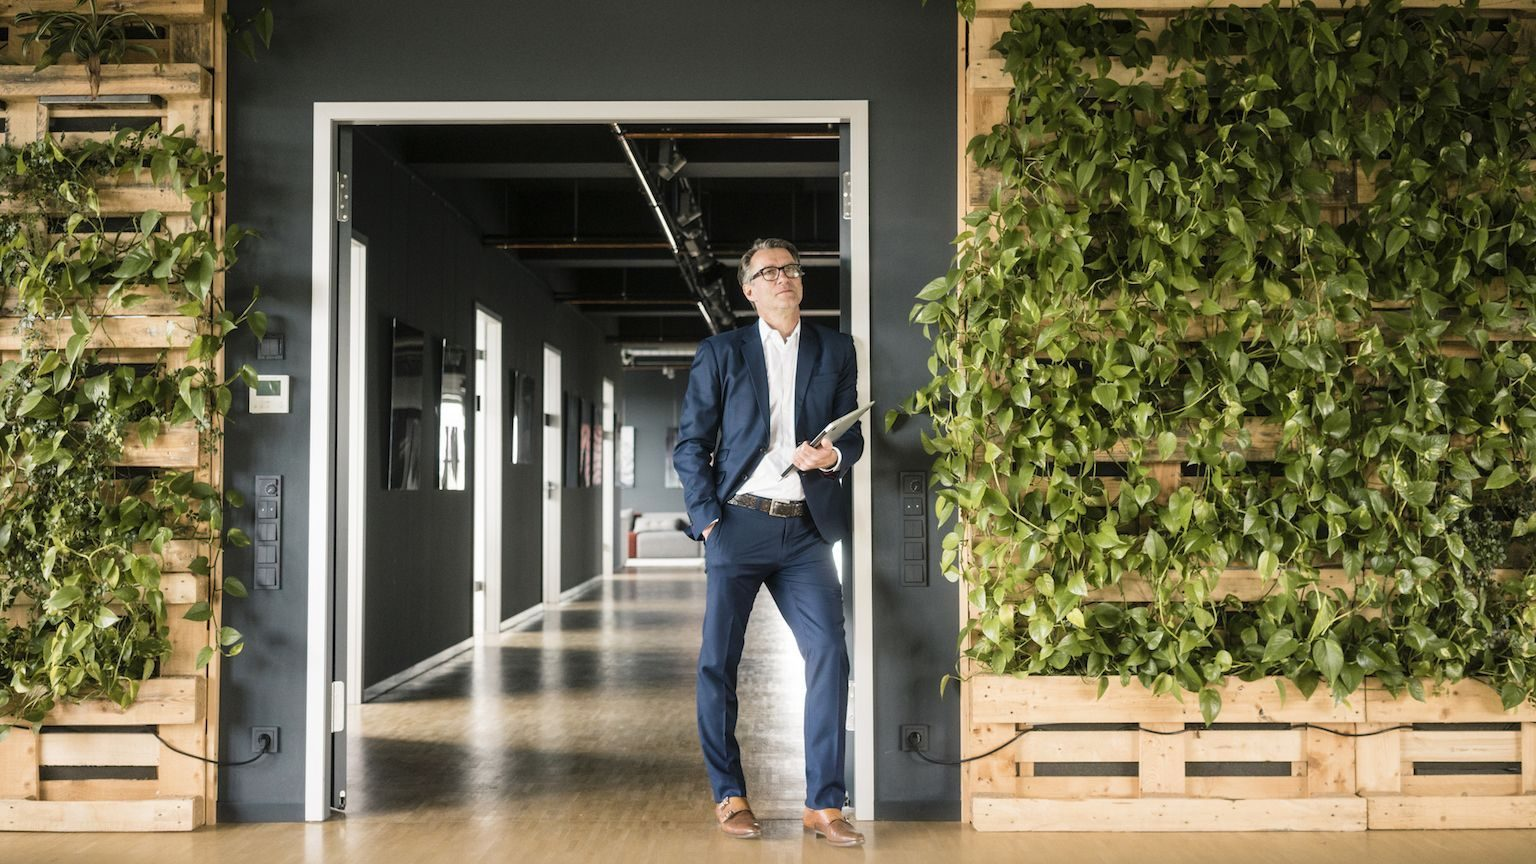 A man in a suit standing in front of a wall covered with hanging plants